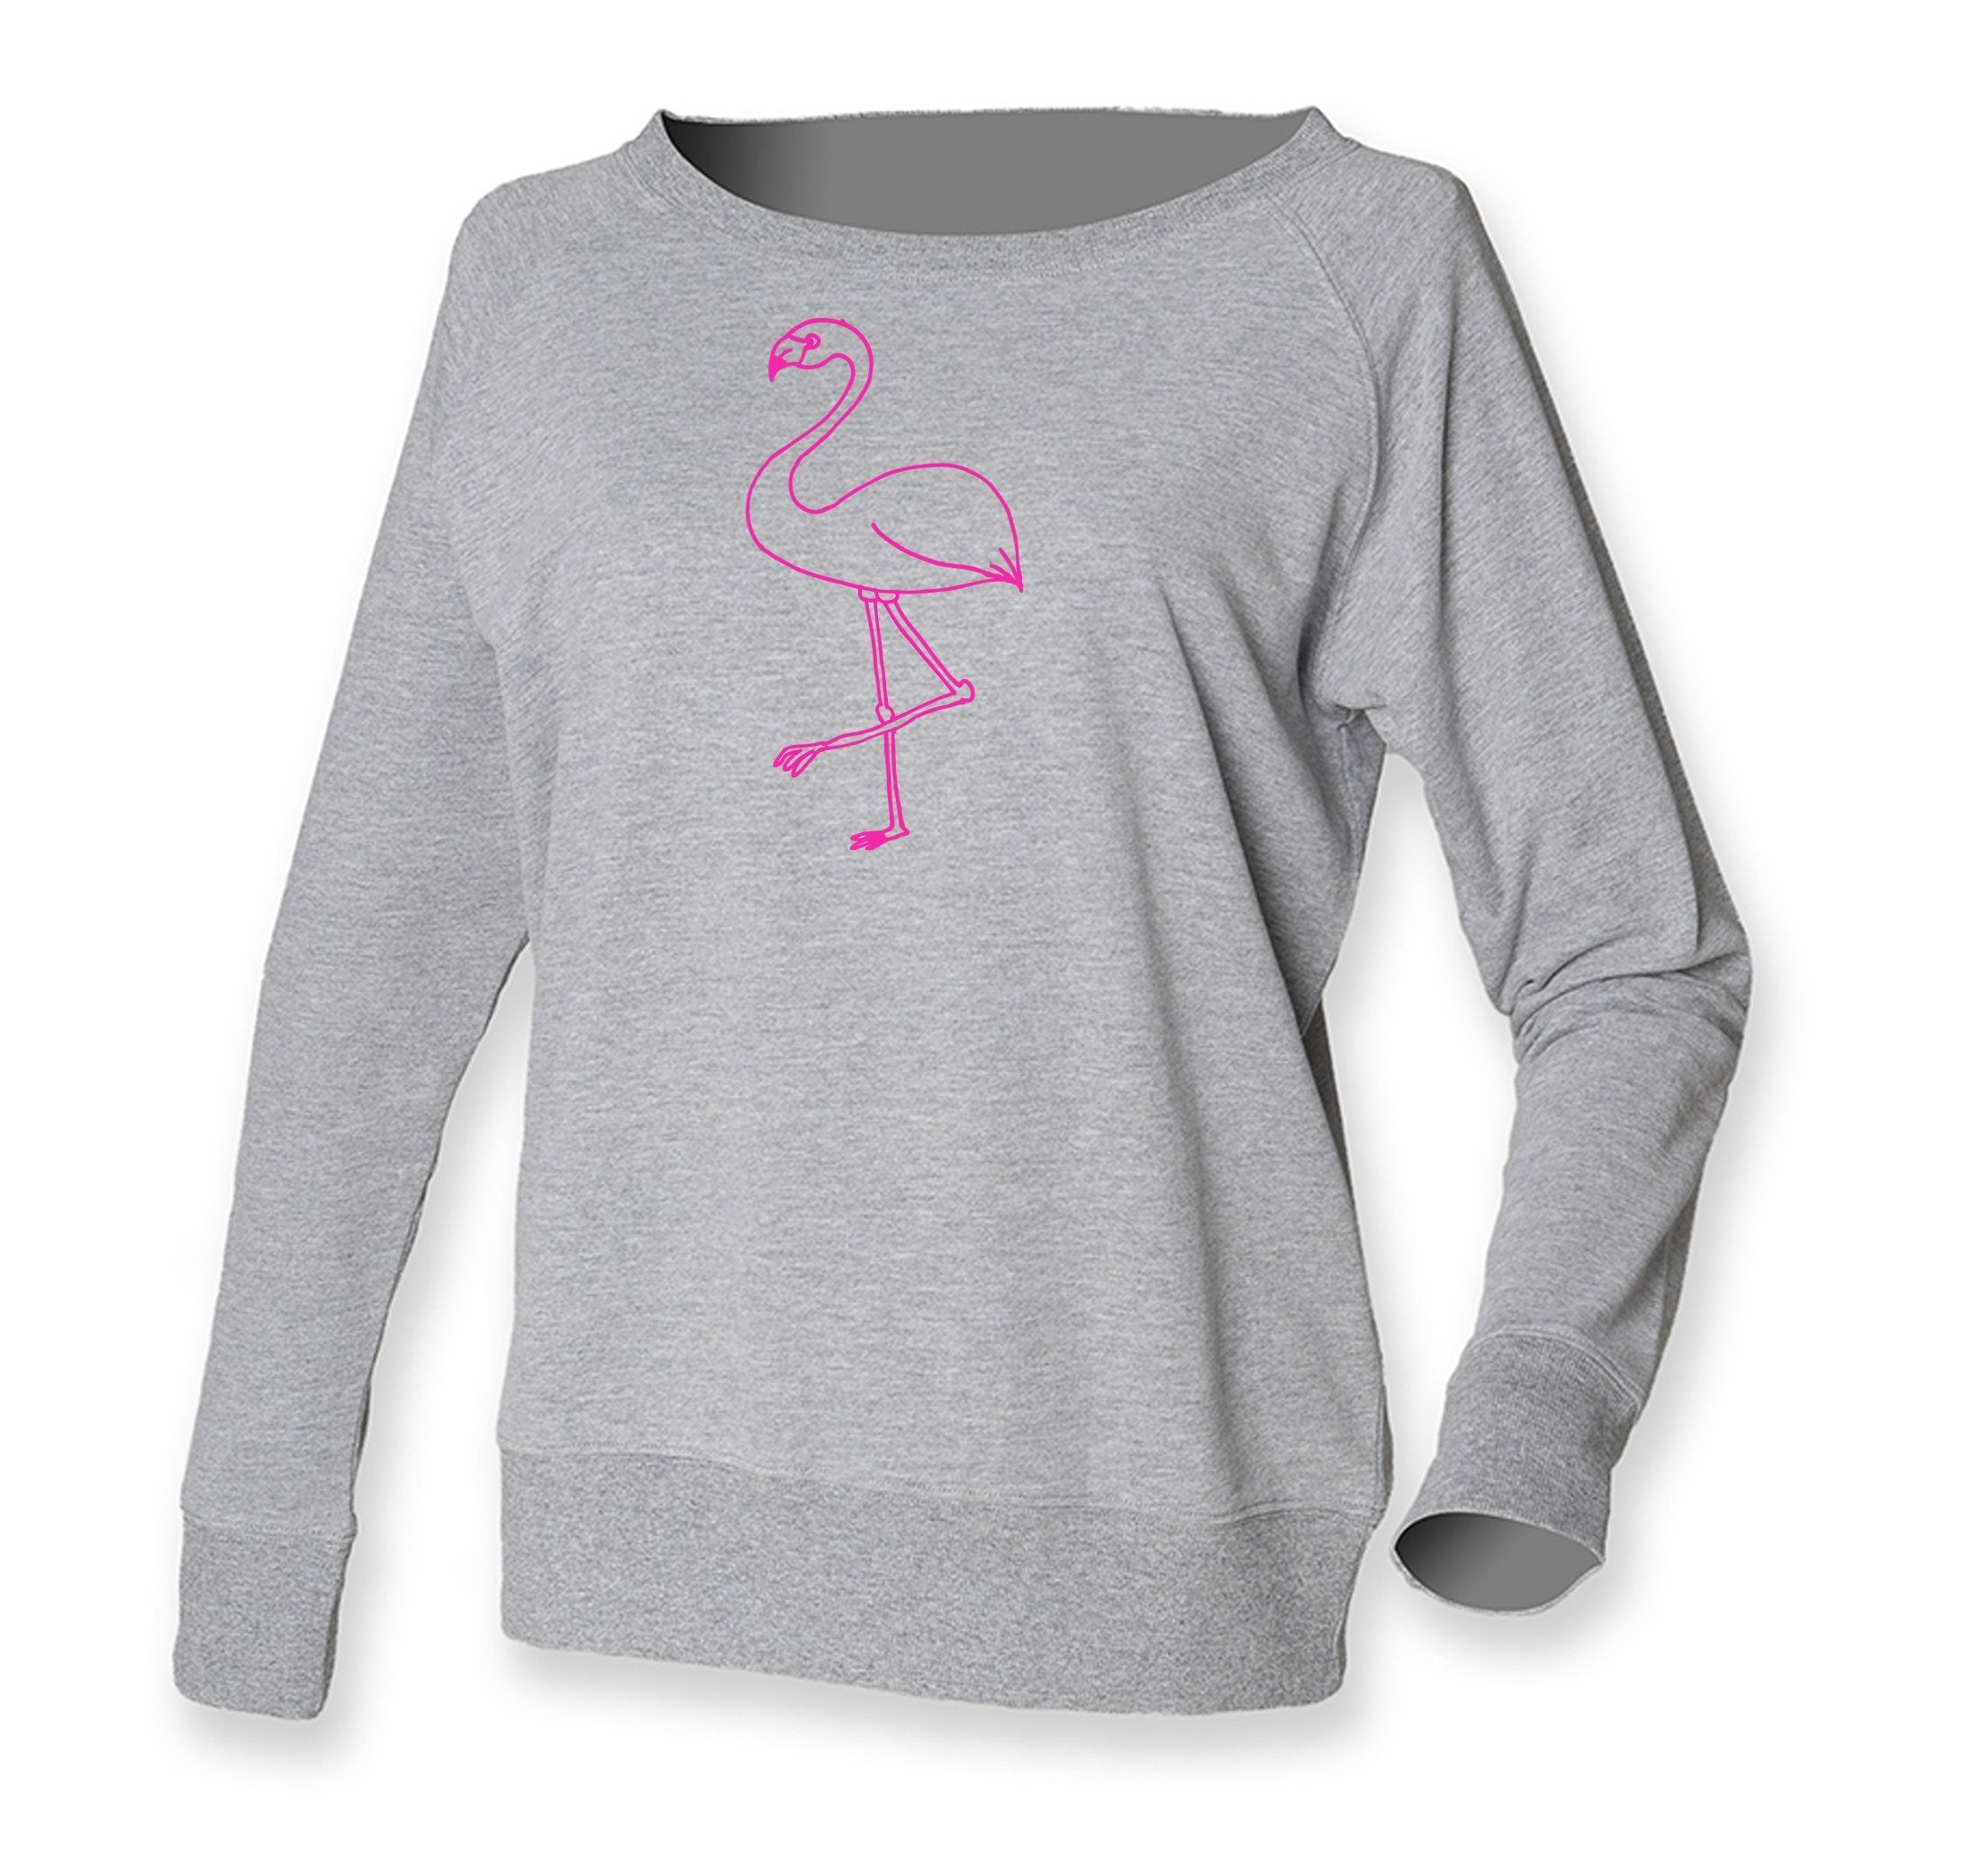 Women Top - Pink Flamingo Jumper, Grey